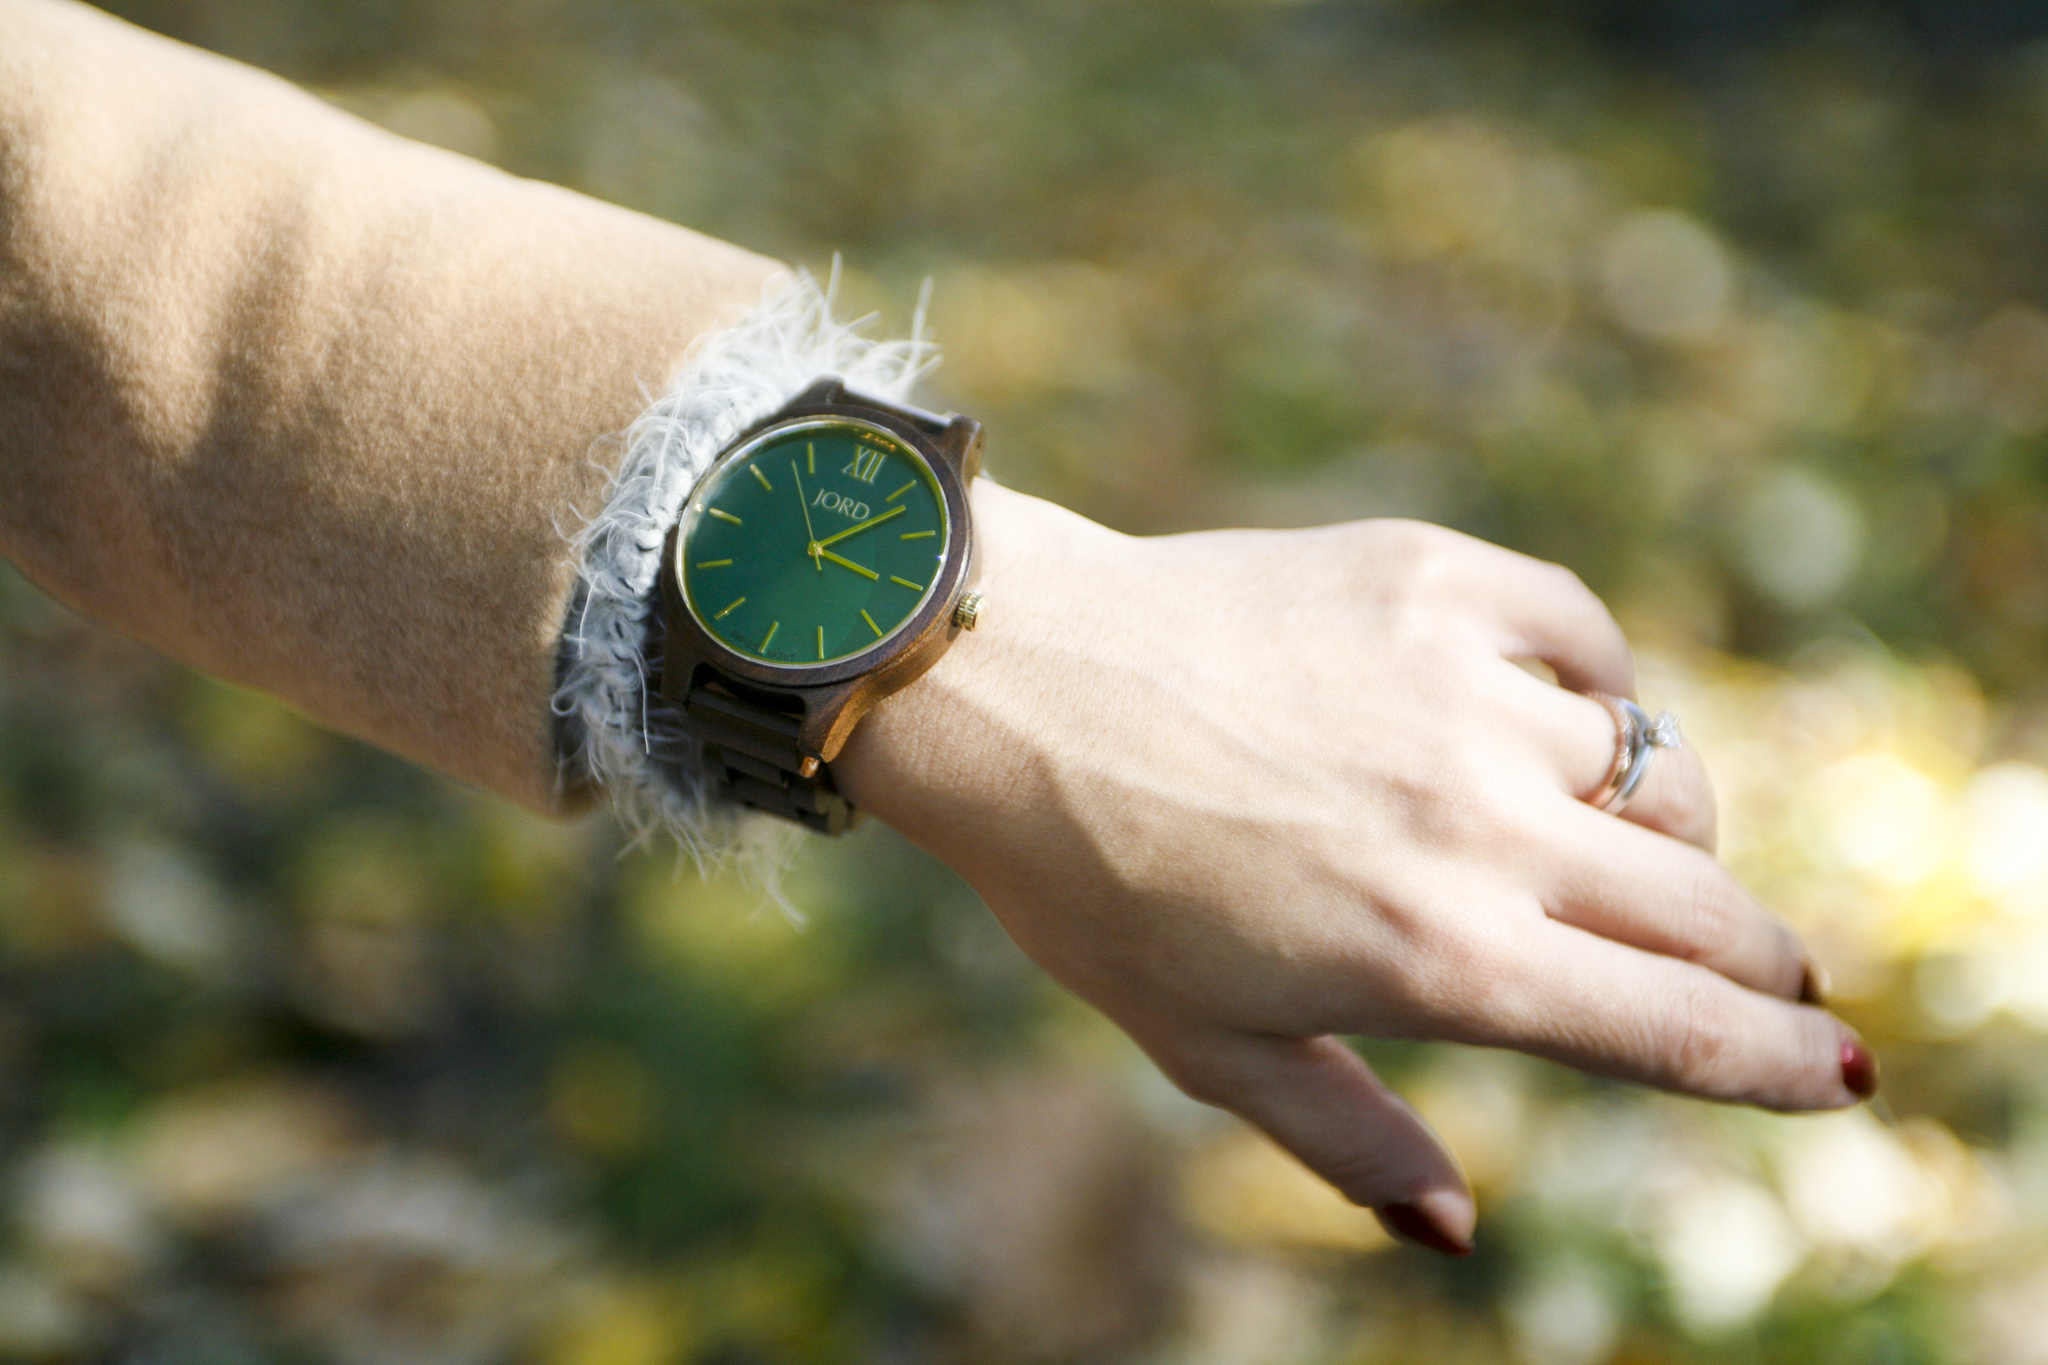 womens jord watch.jpg